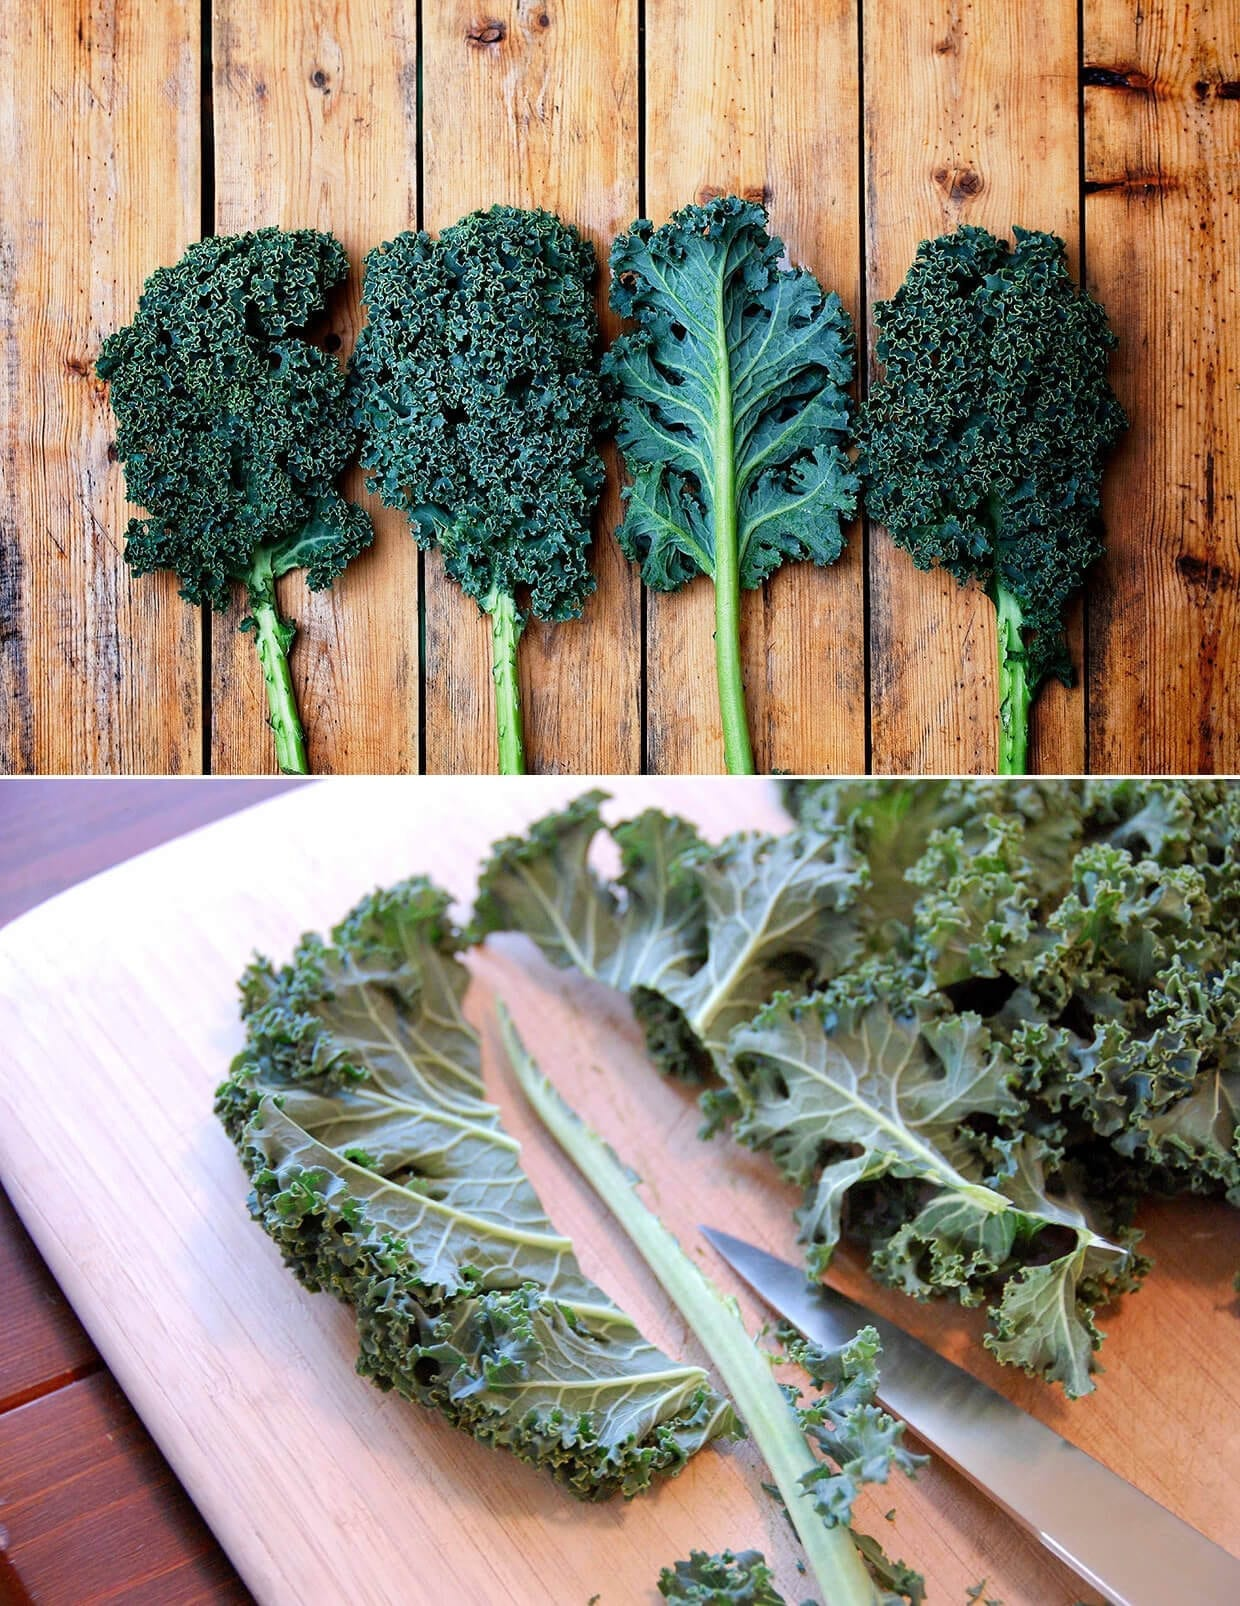 kale shopped on a wooden chopping board